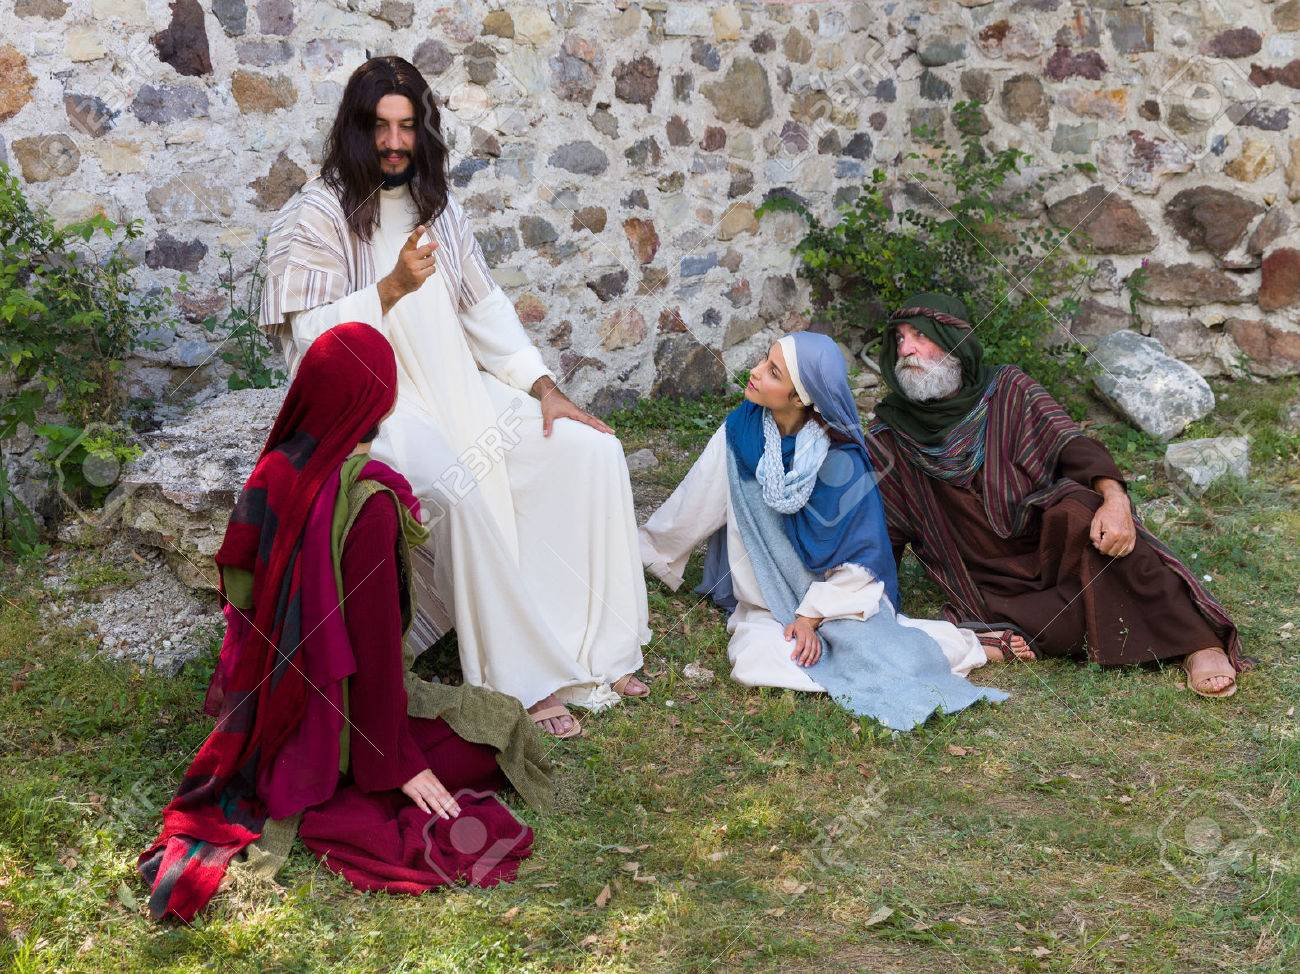 Jesus preaching to a group of people - historical reenactment - 62625604